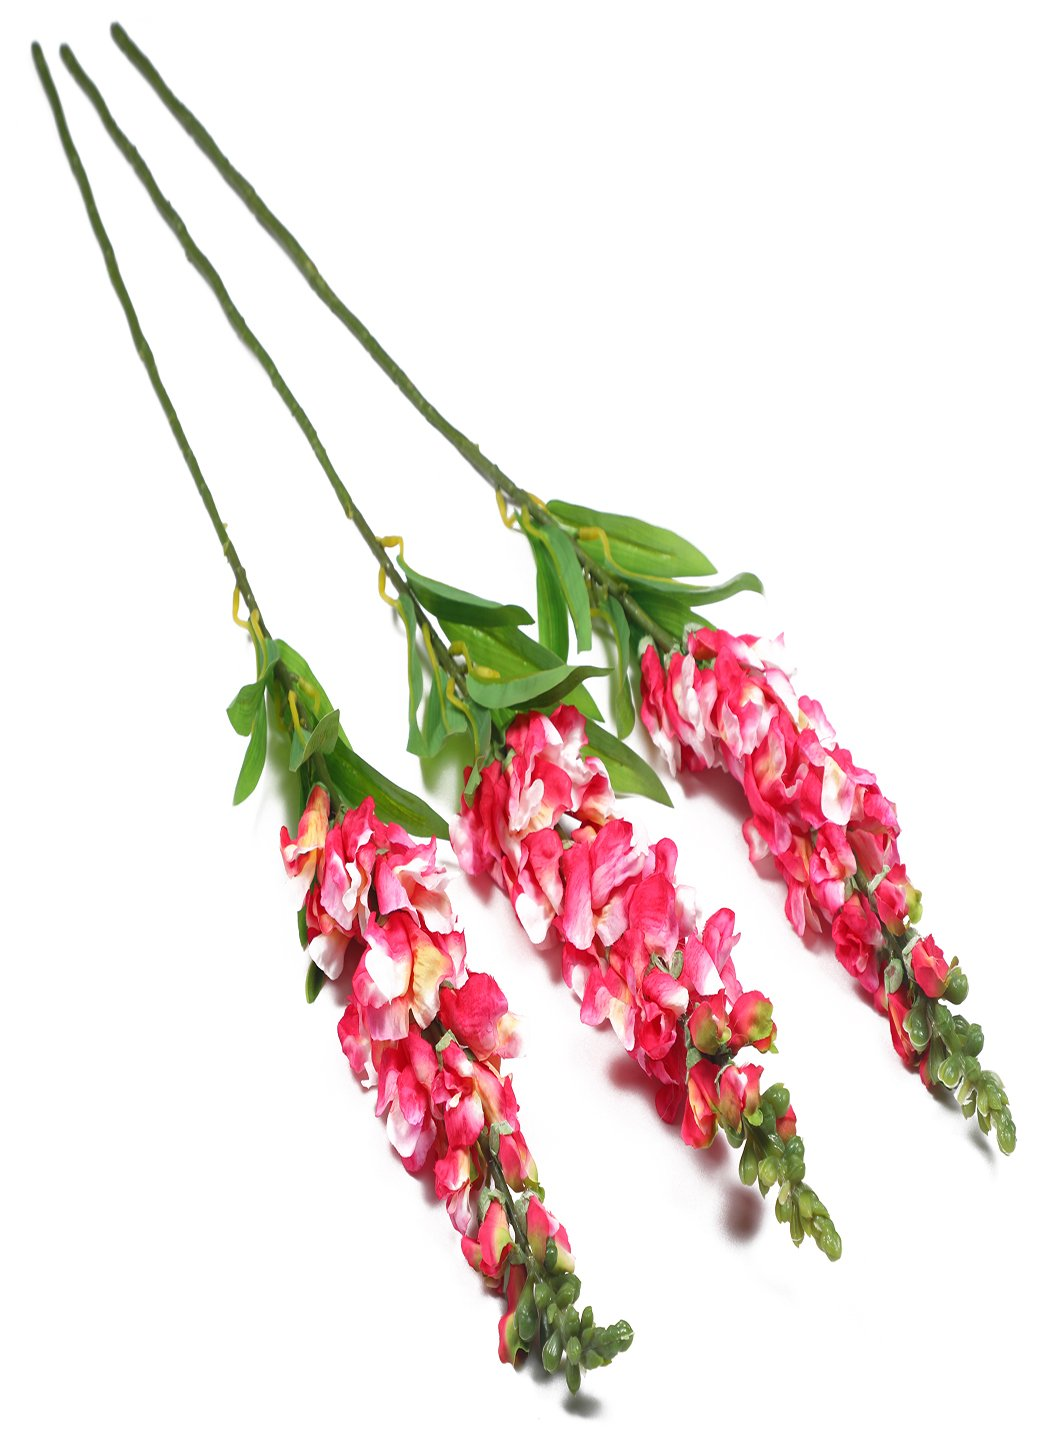 Pollination Decorative Pink Snapdragon Artificial Flower For Home Decor (Pack of 3, 35 Inch ) - Artificial Flowers & Plants - PolliNation